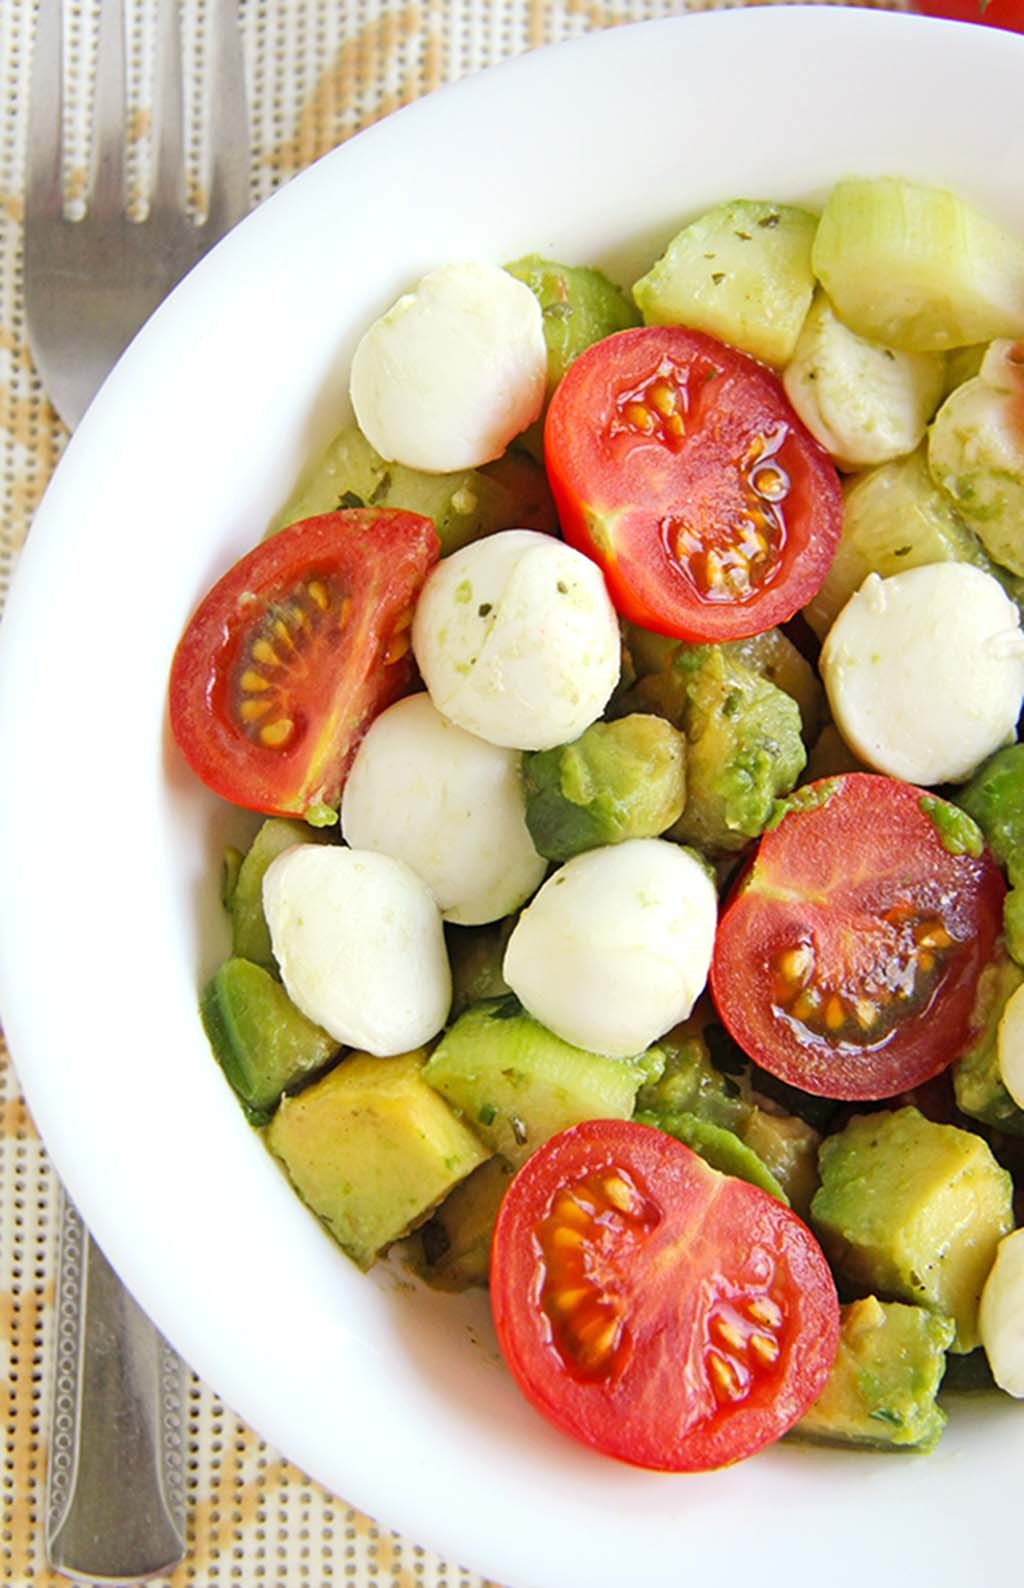 Avocado Salad with Tomato, Cucumber and Mozzarella served with some crunchy french bread and you've got a cool, easy dinner for a hot day.